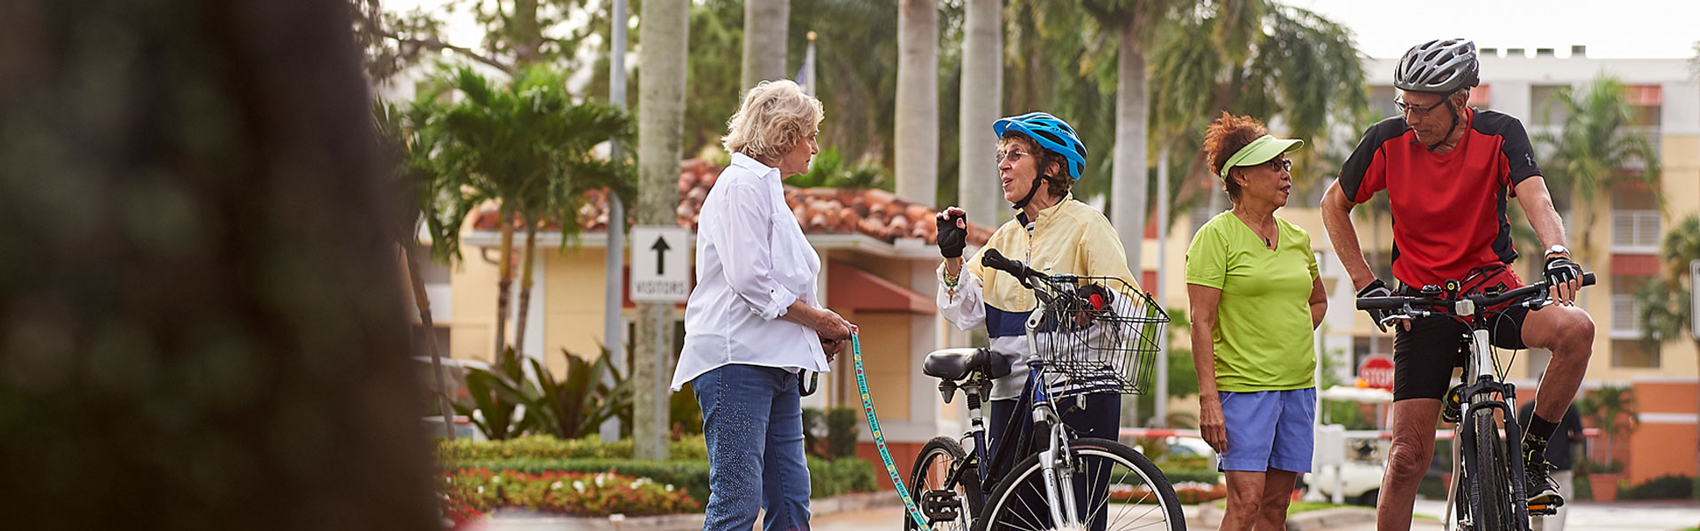 An elderly couple on bikes stopped to speak to two elderly women on a walk